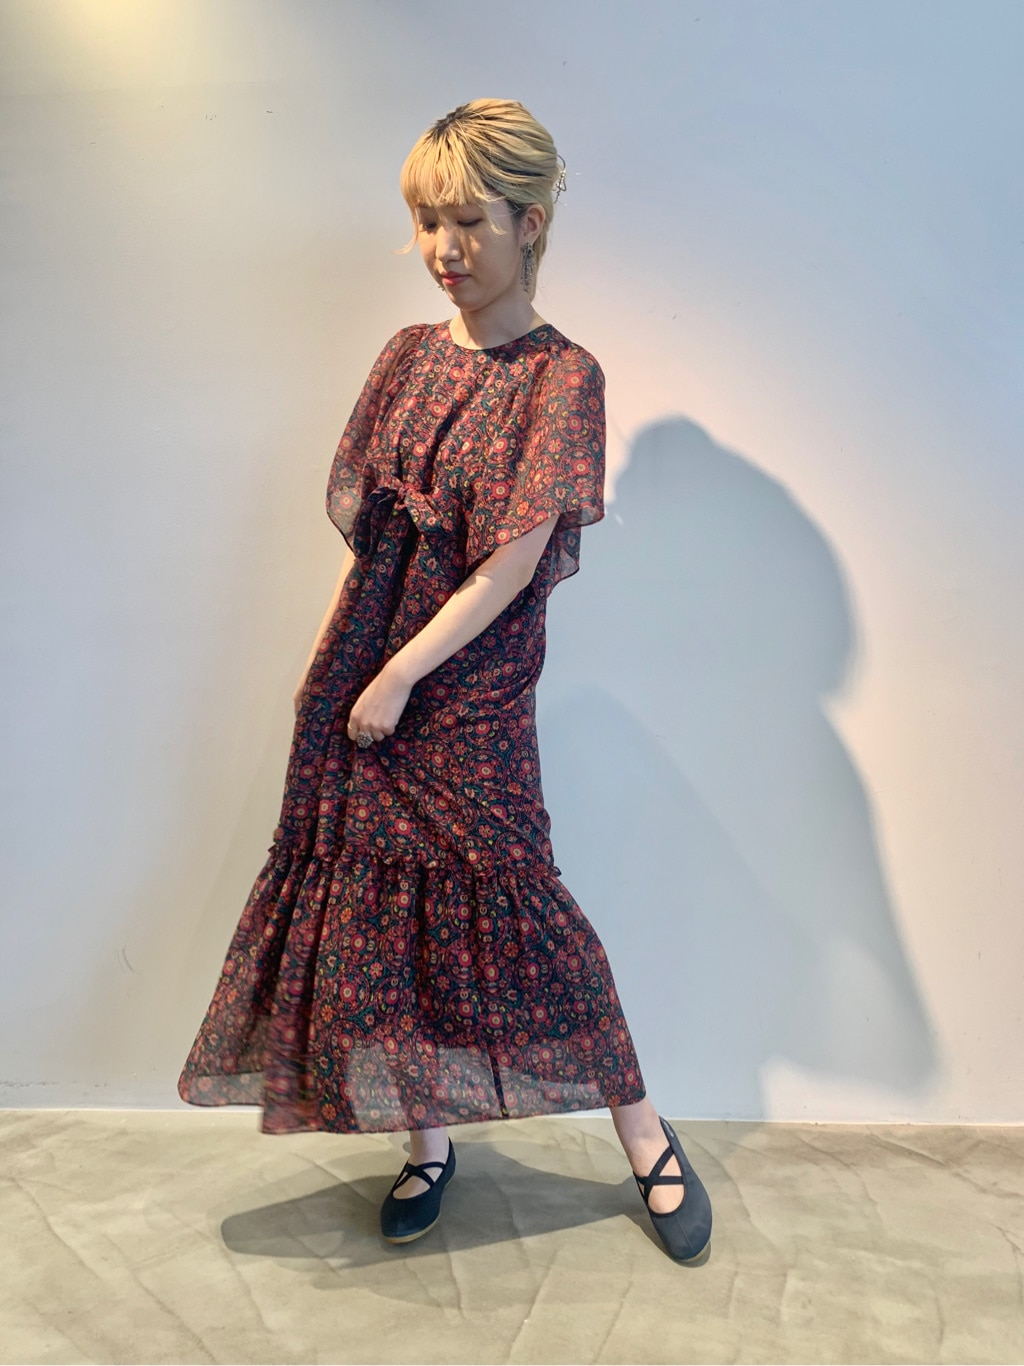 Dot and Stripes CHILD WOMAN ラフォーレ原宿 身長:160cm 2020.08.04